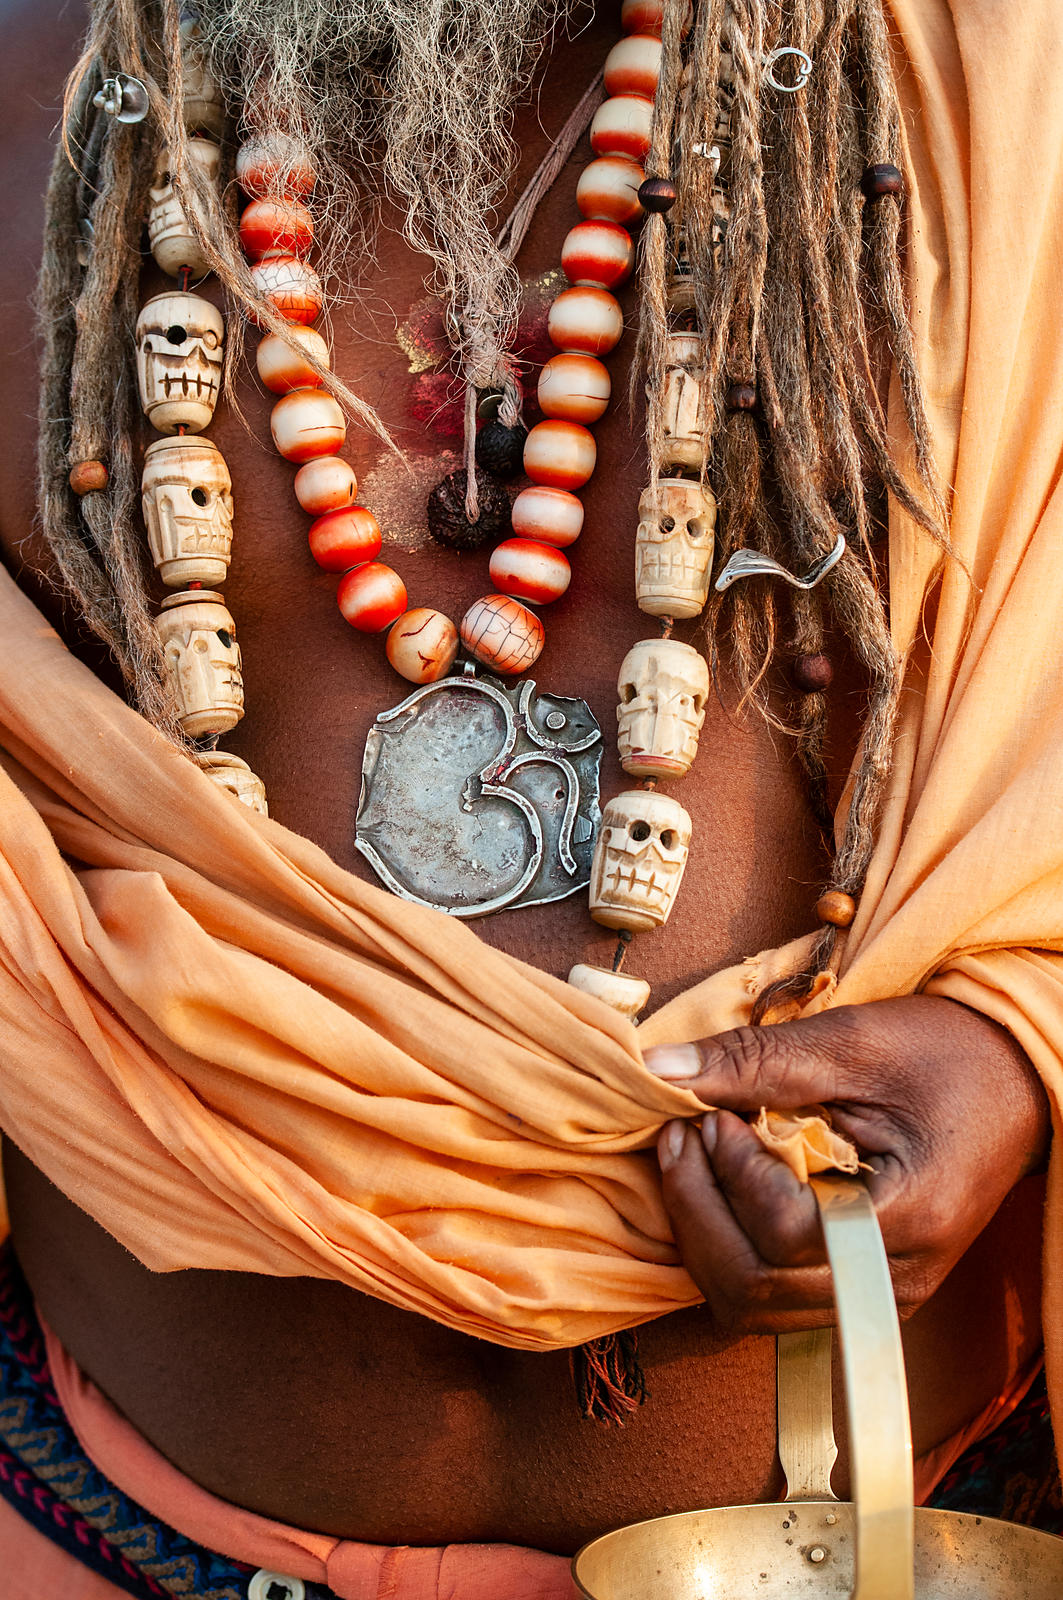 A close up of a saint during the Kumbh Mela was shot in Allahabad